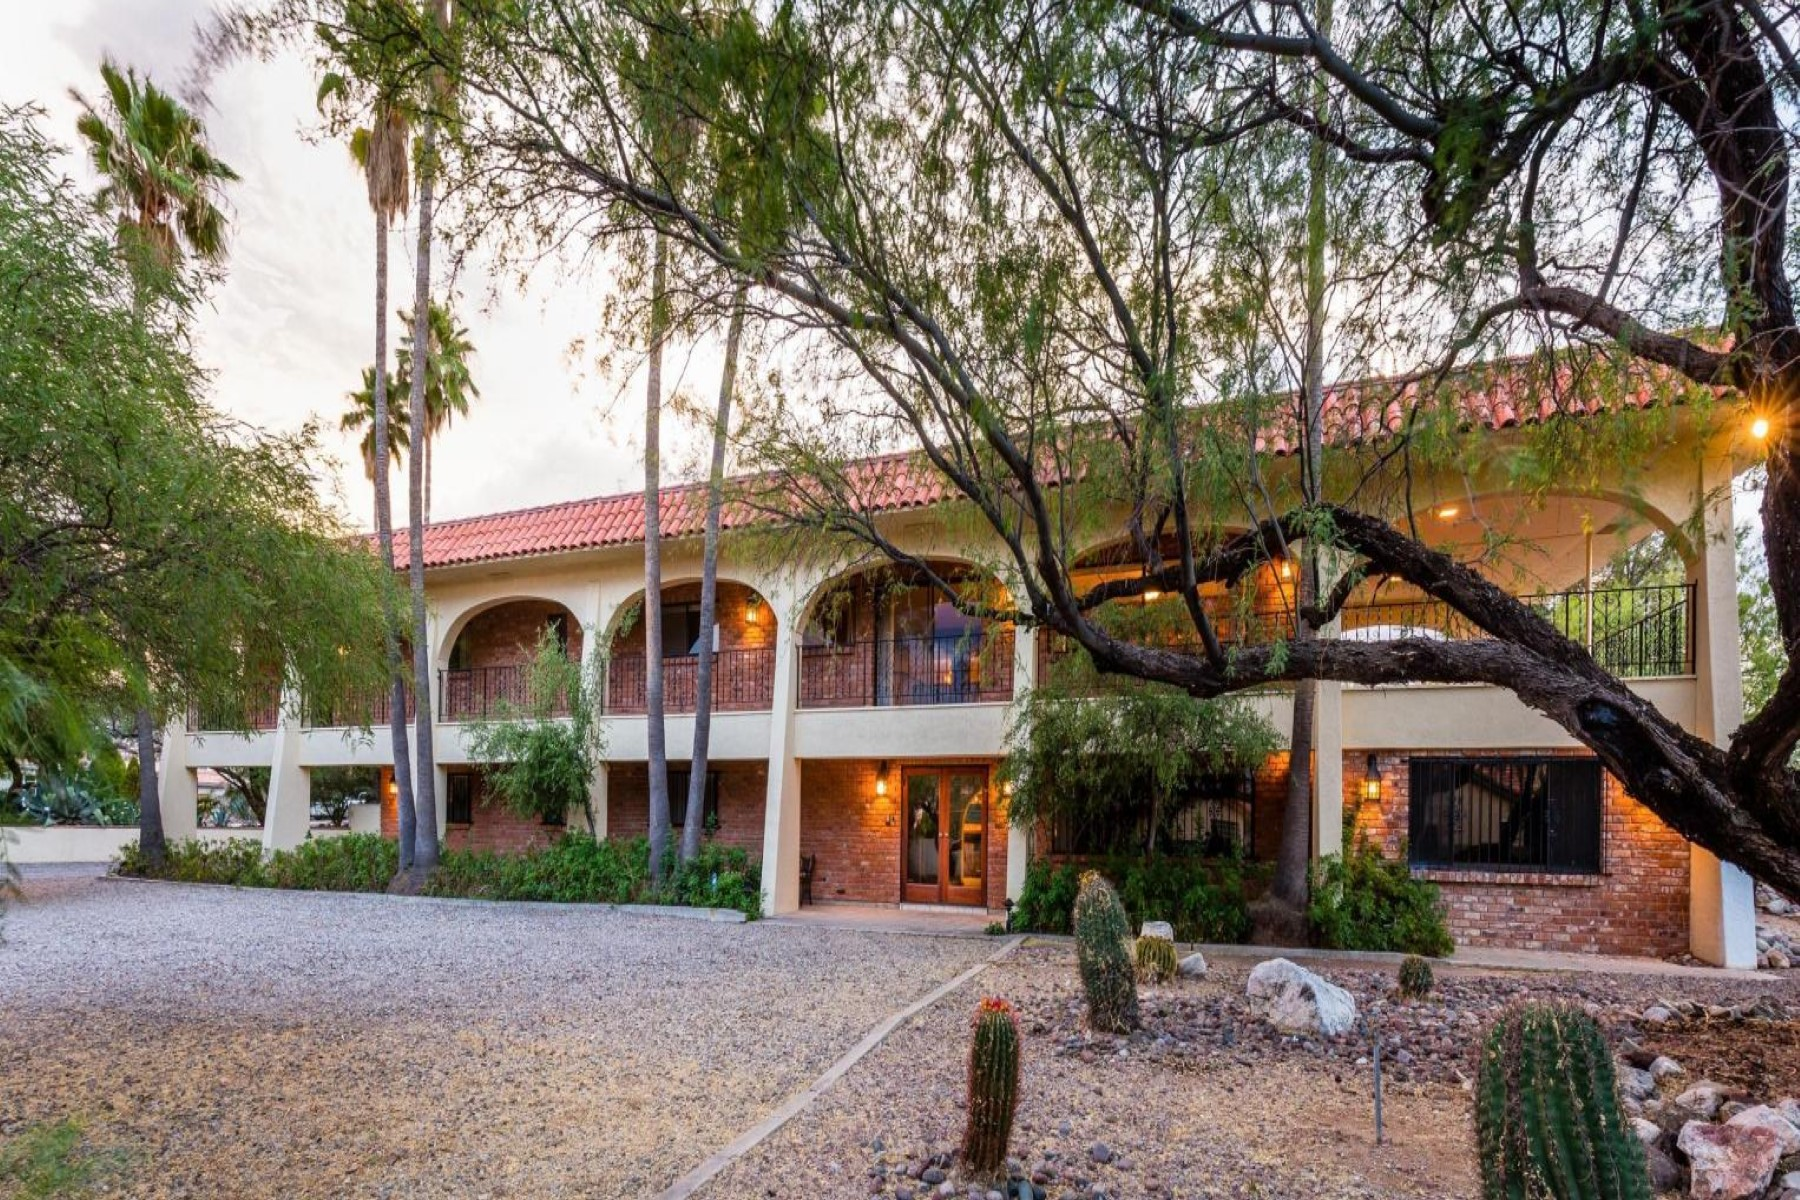 Maison unifamiliale pour l Vente à Private gated compound on nearly 3 acres providing a secluded feel 260 S Sewell Place Tucson, Arizona, 85748 États-Unis